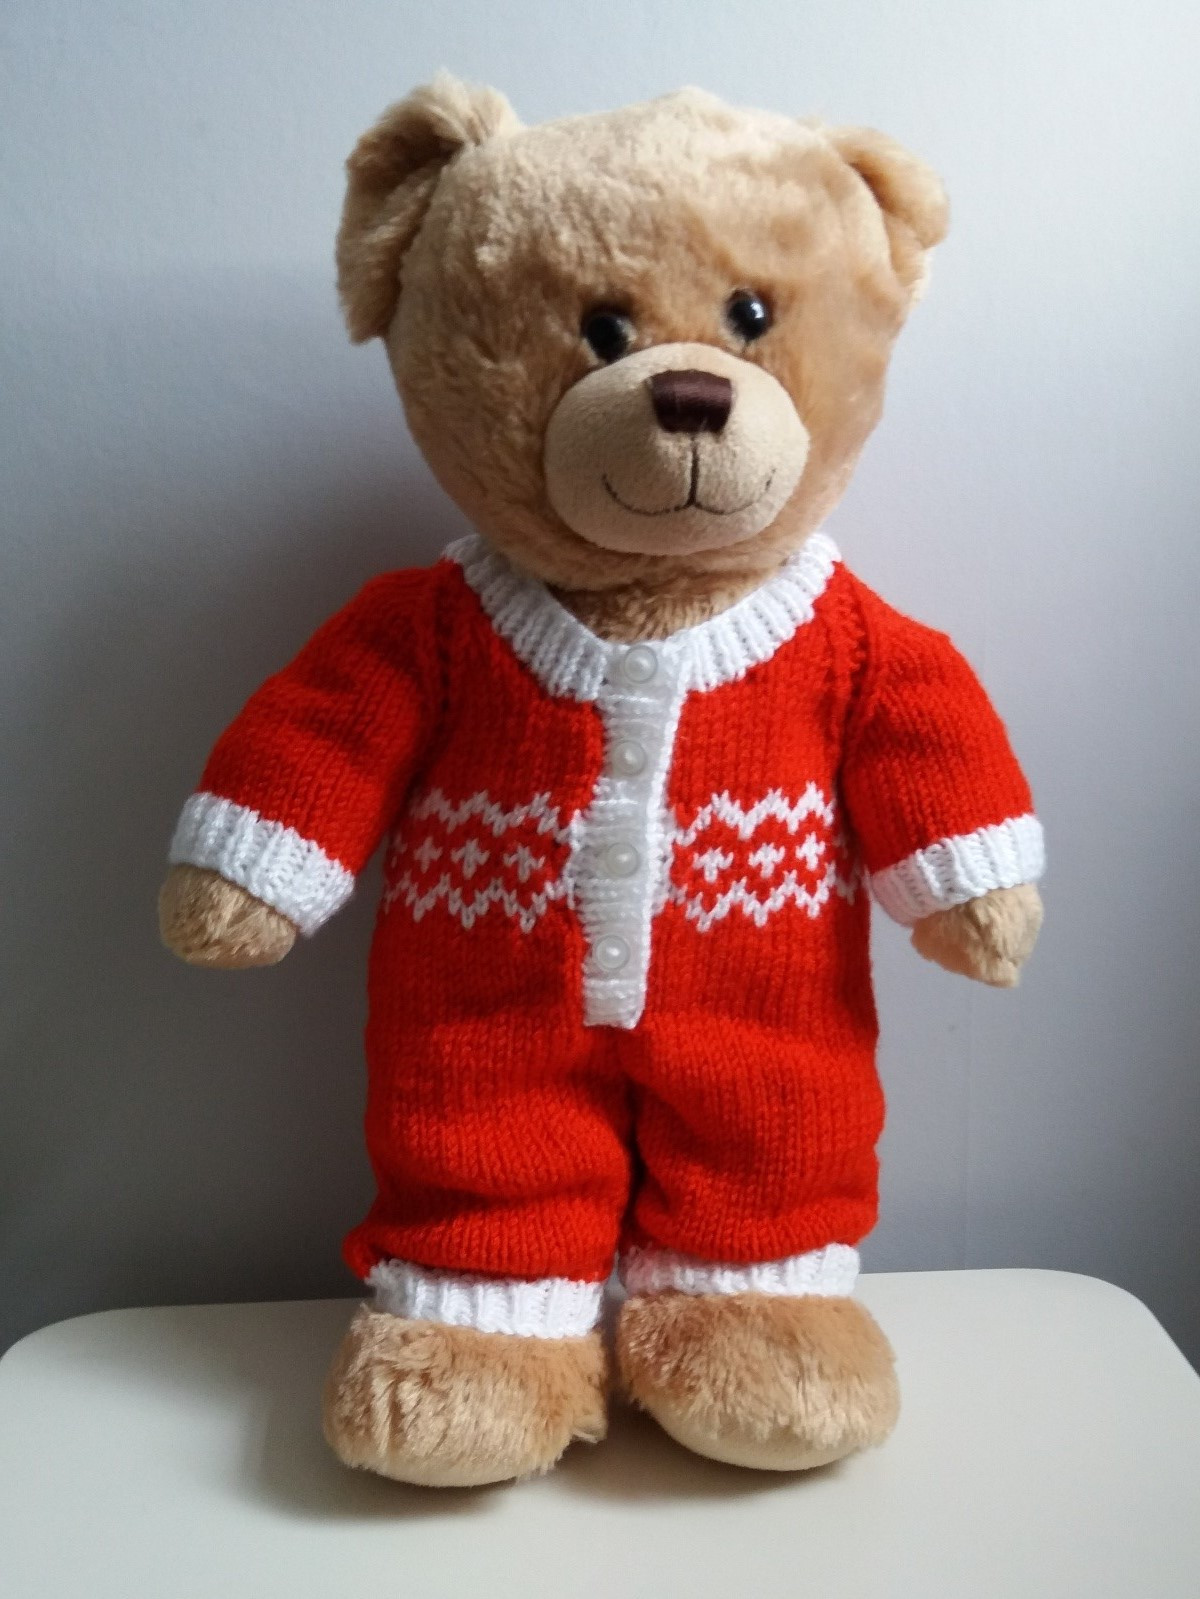 Lovely Linmary Knits Teddy Bear Patterns Knitted Teddy Bear Of Amazing 45 Ideas Knitted Teddy Bear